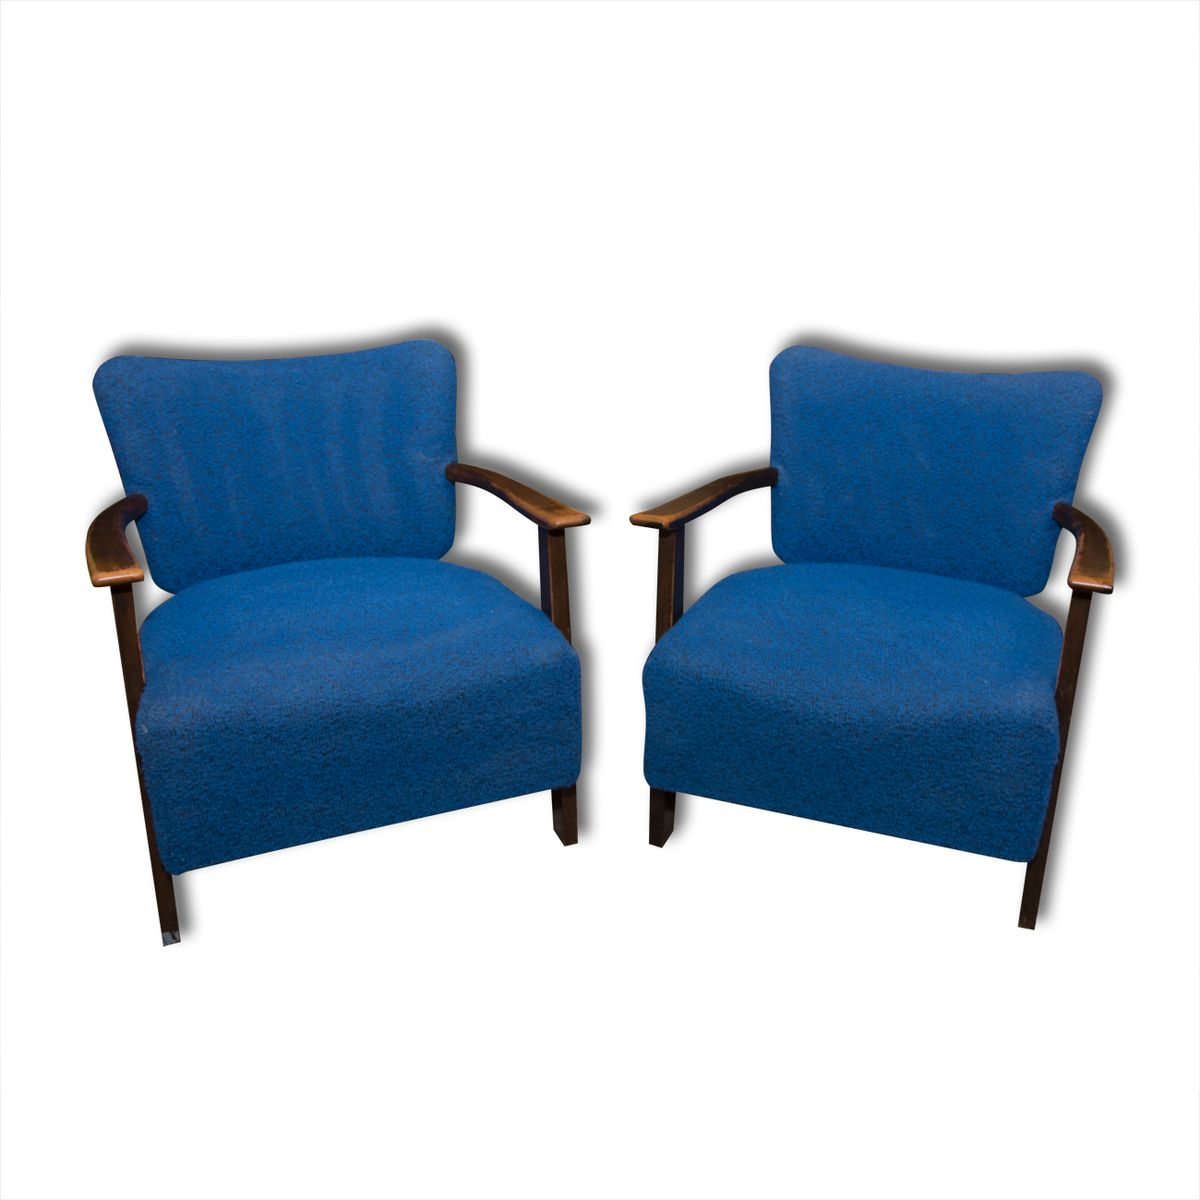 Blue Armchairs From Thonet 1930s Set Of 2 For Sale At Pamono